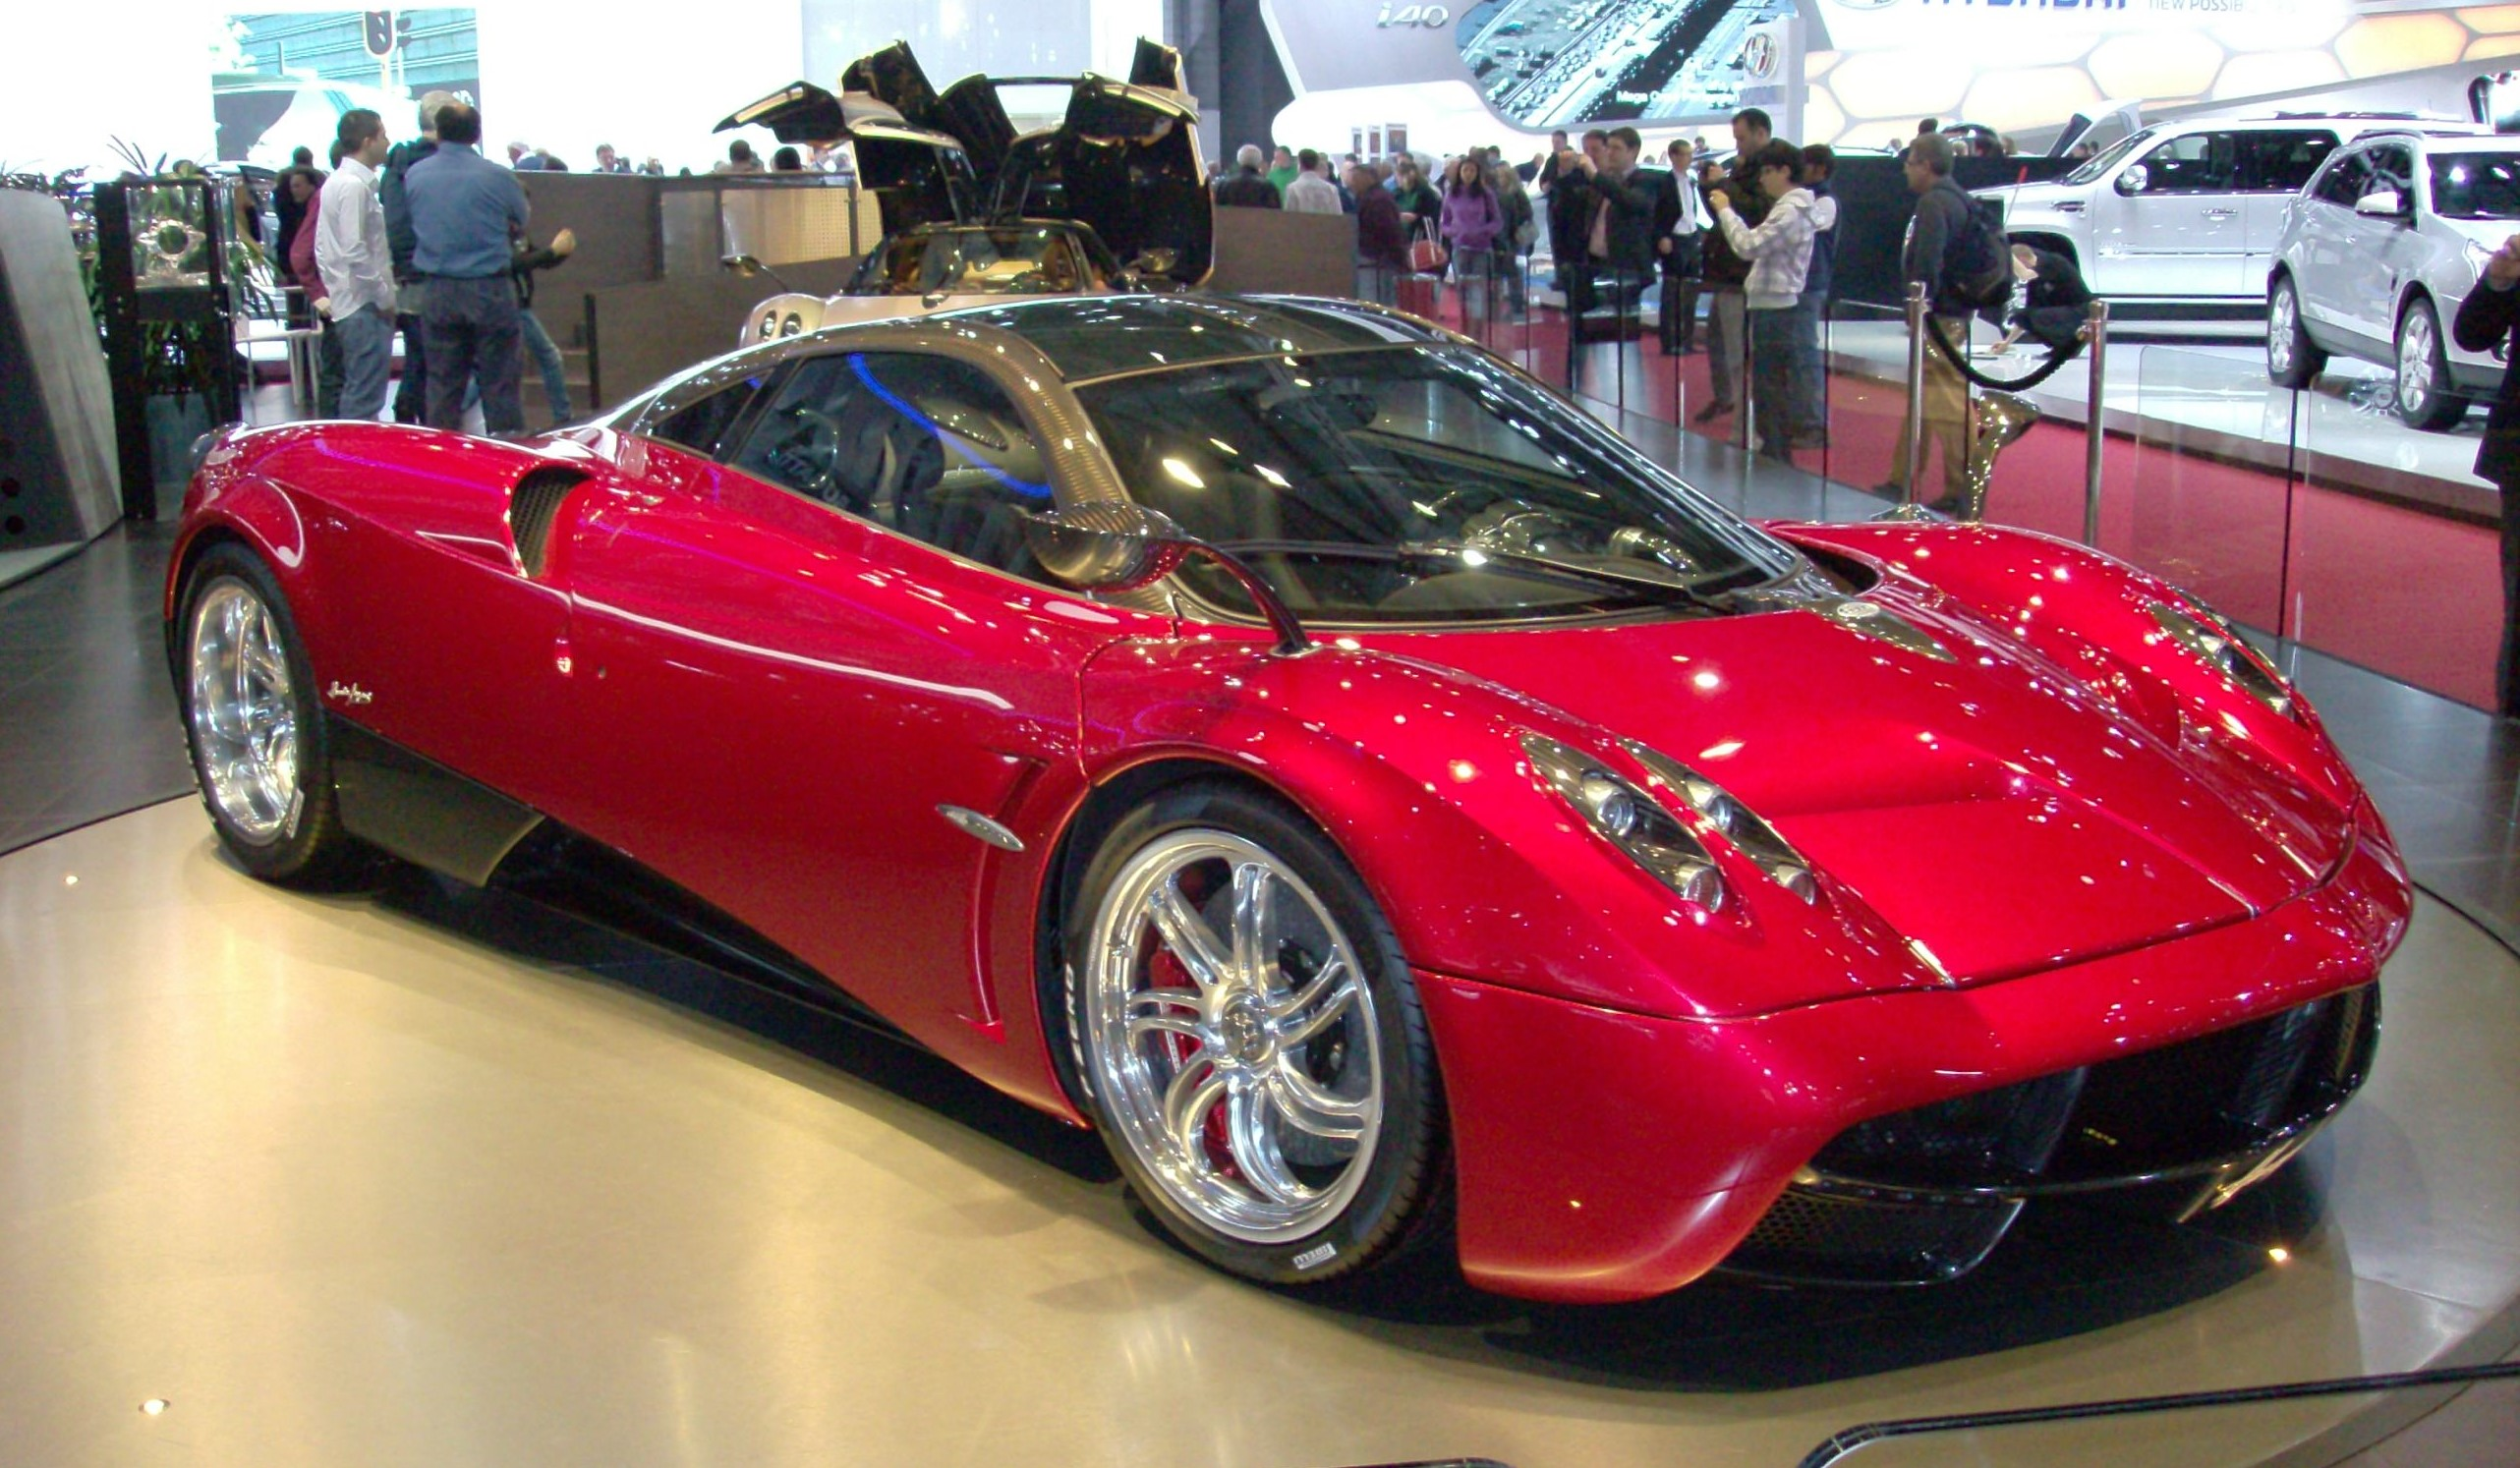 Pagani Huayra showroom in red